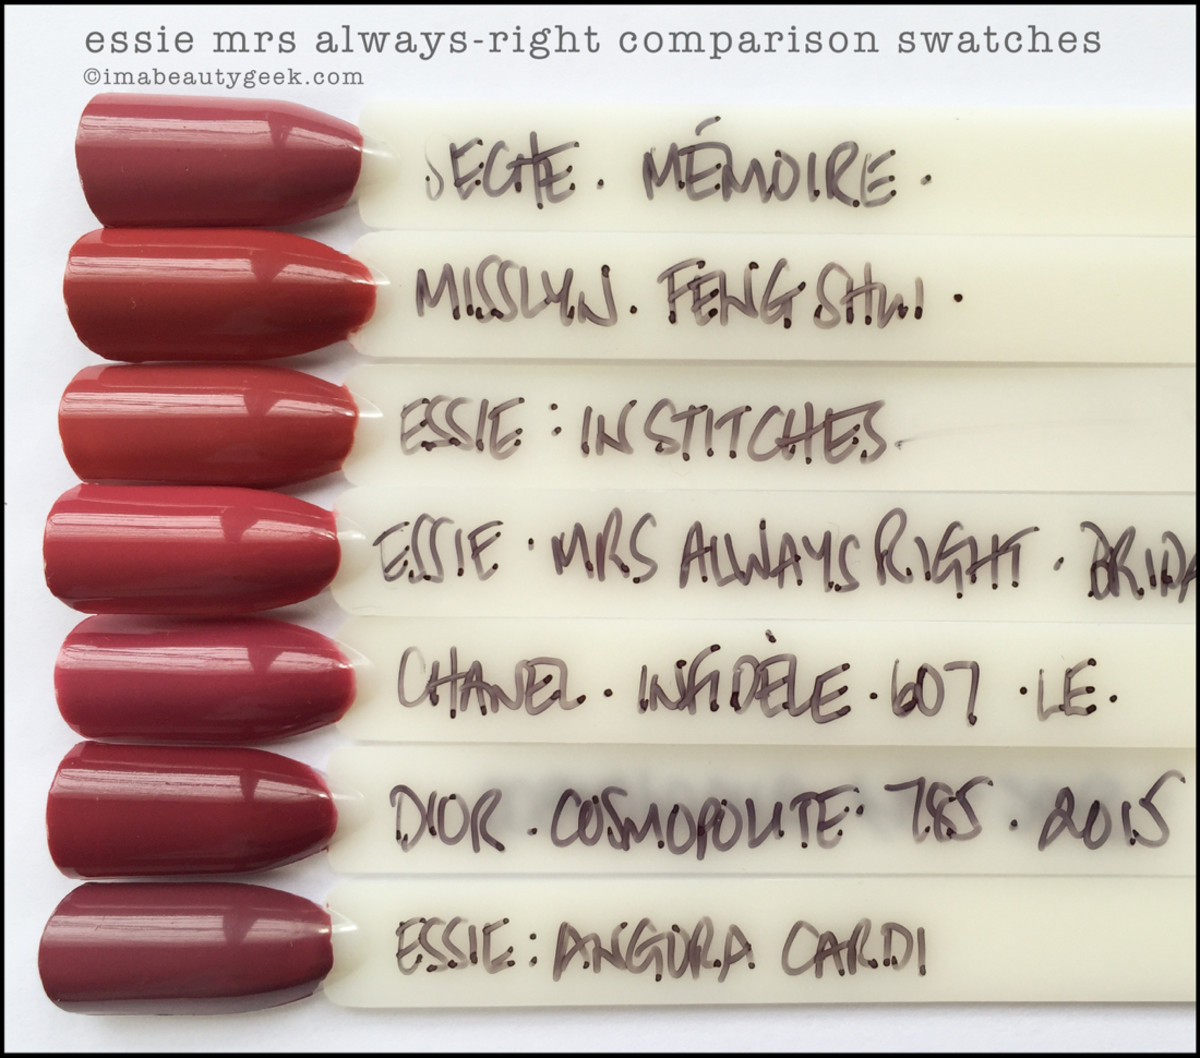 Essie Mrs Always Right Comparison Swatches_Essie Bridal 2016 Collection